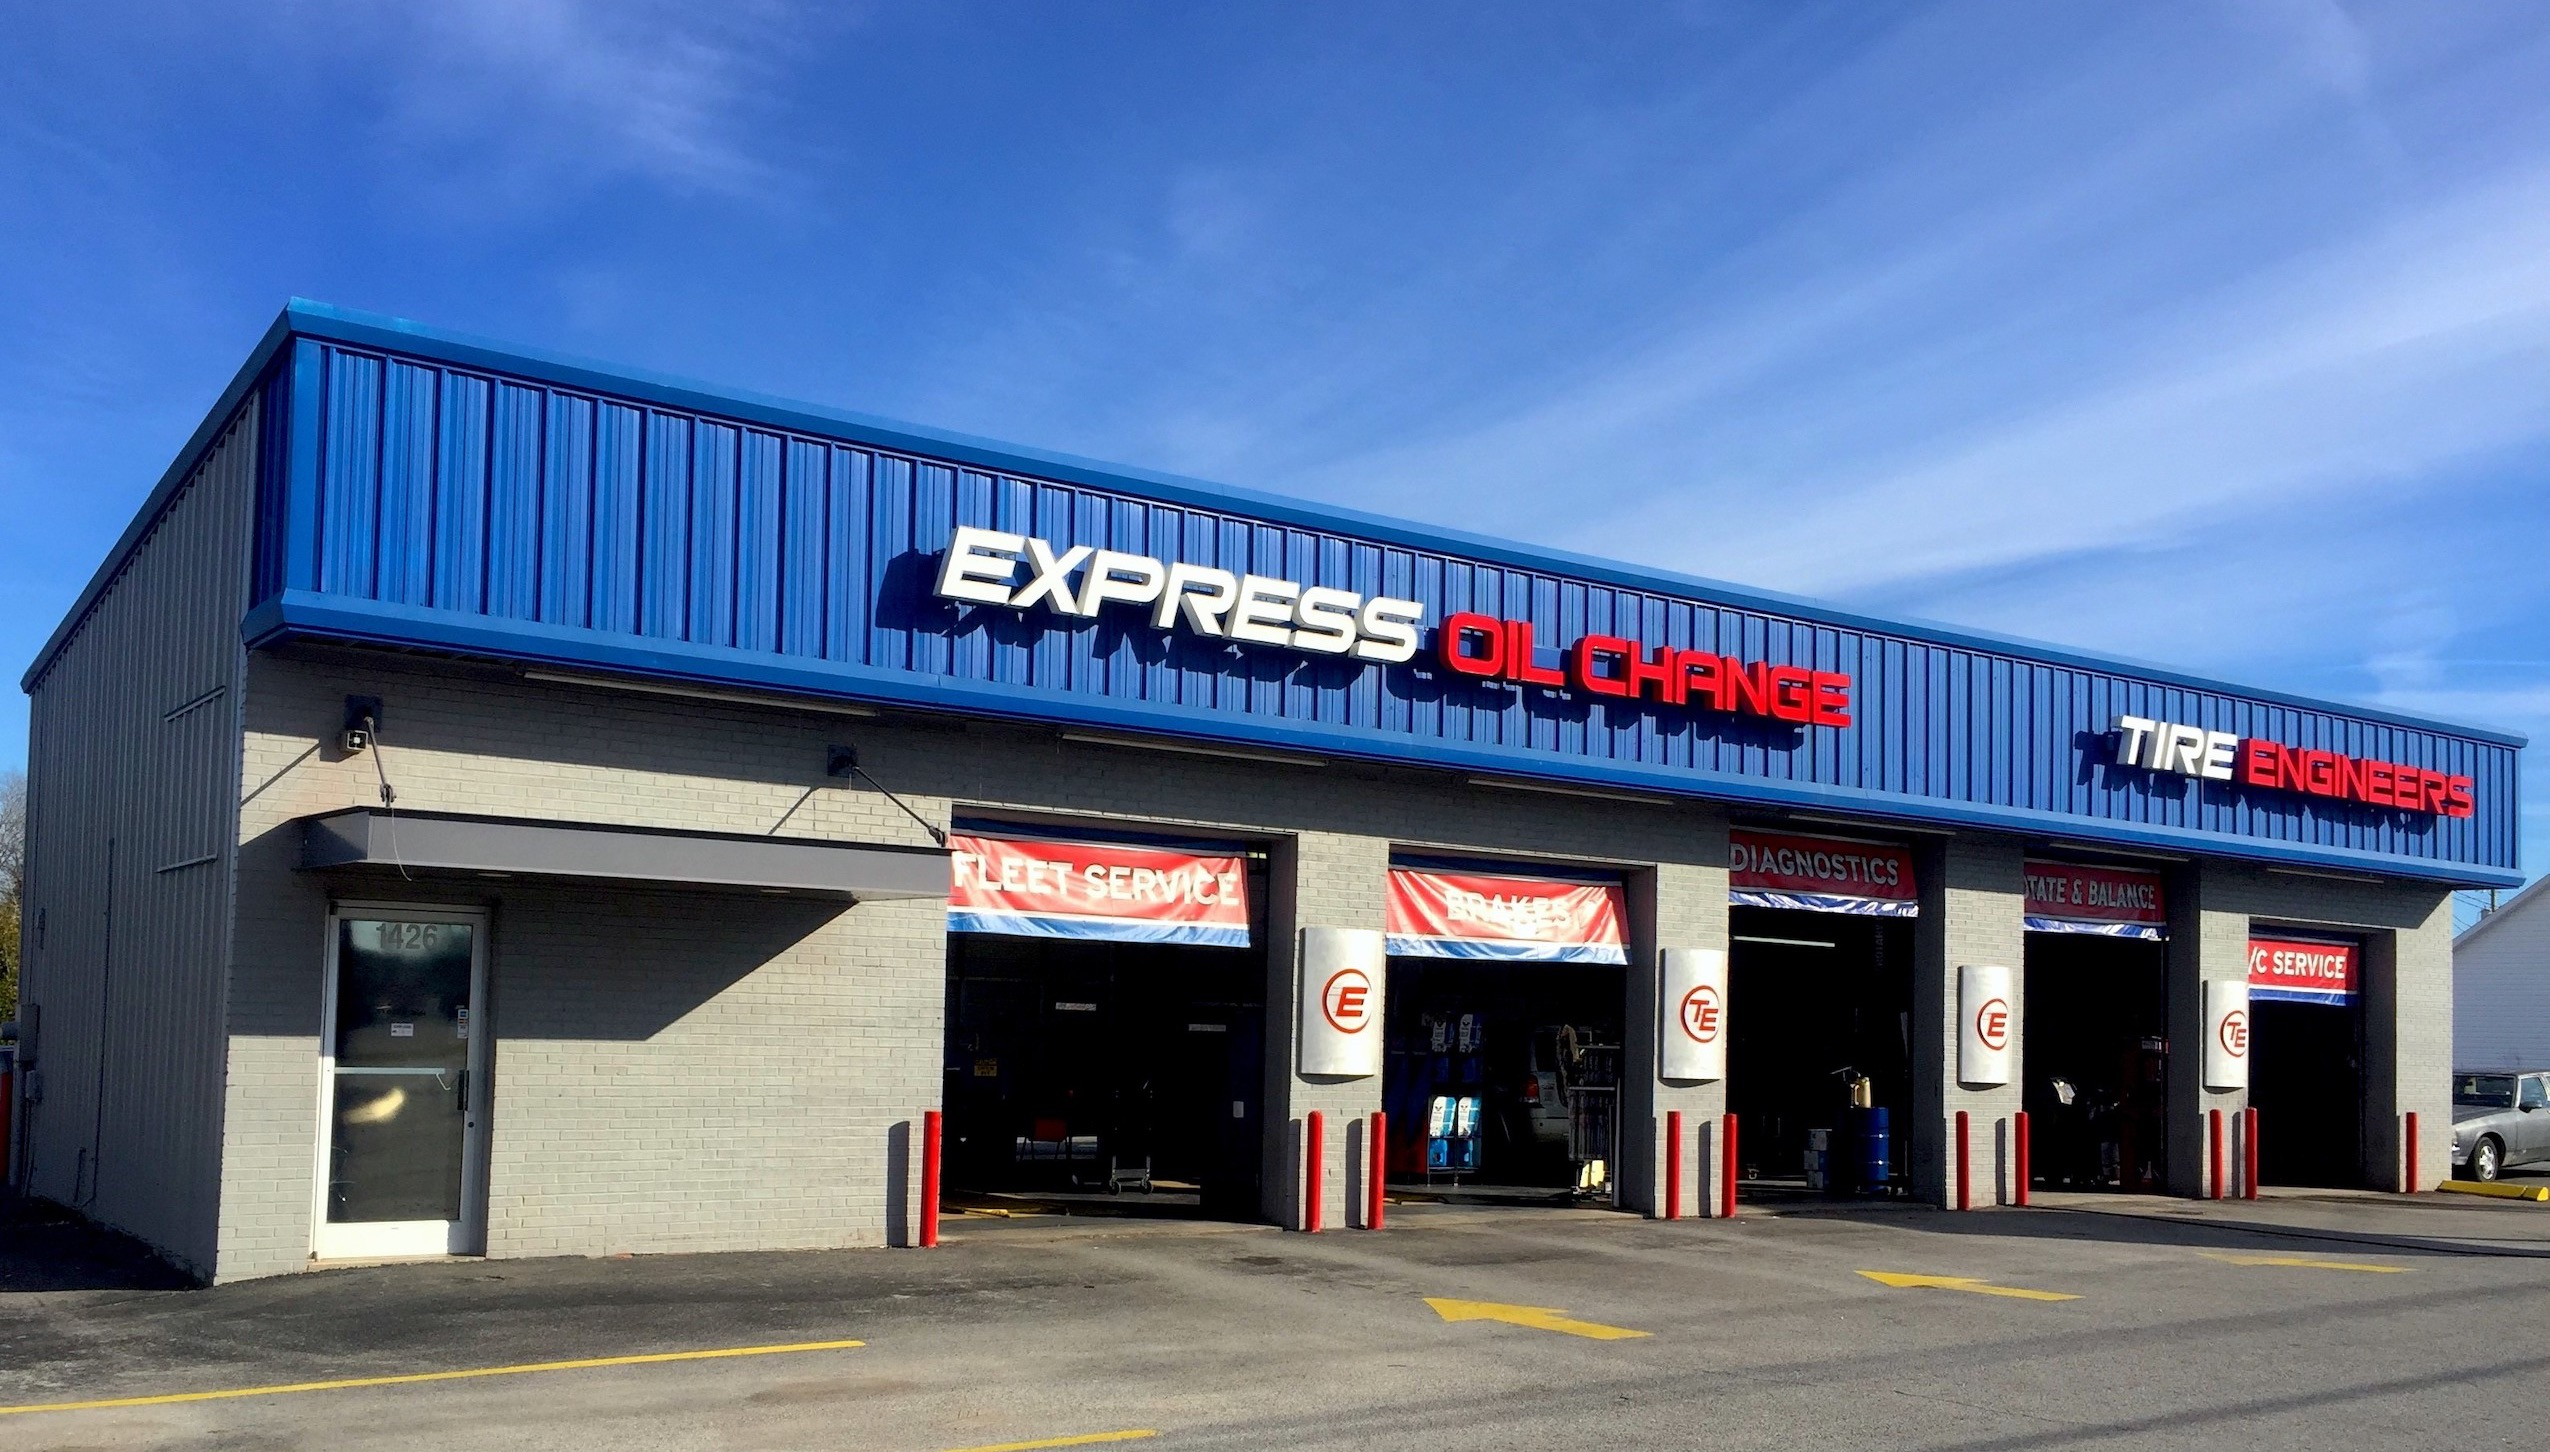 Express Oil Change & Tire Engineers Fayetteville, TN store